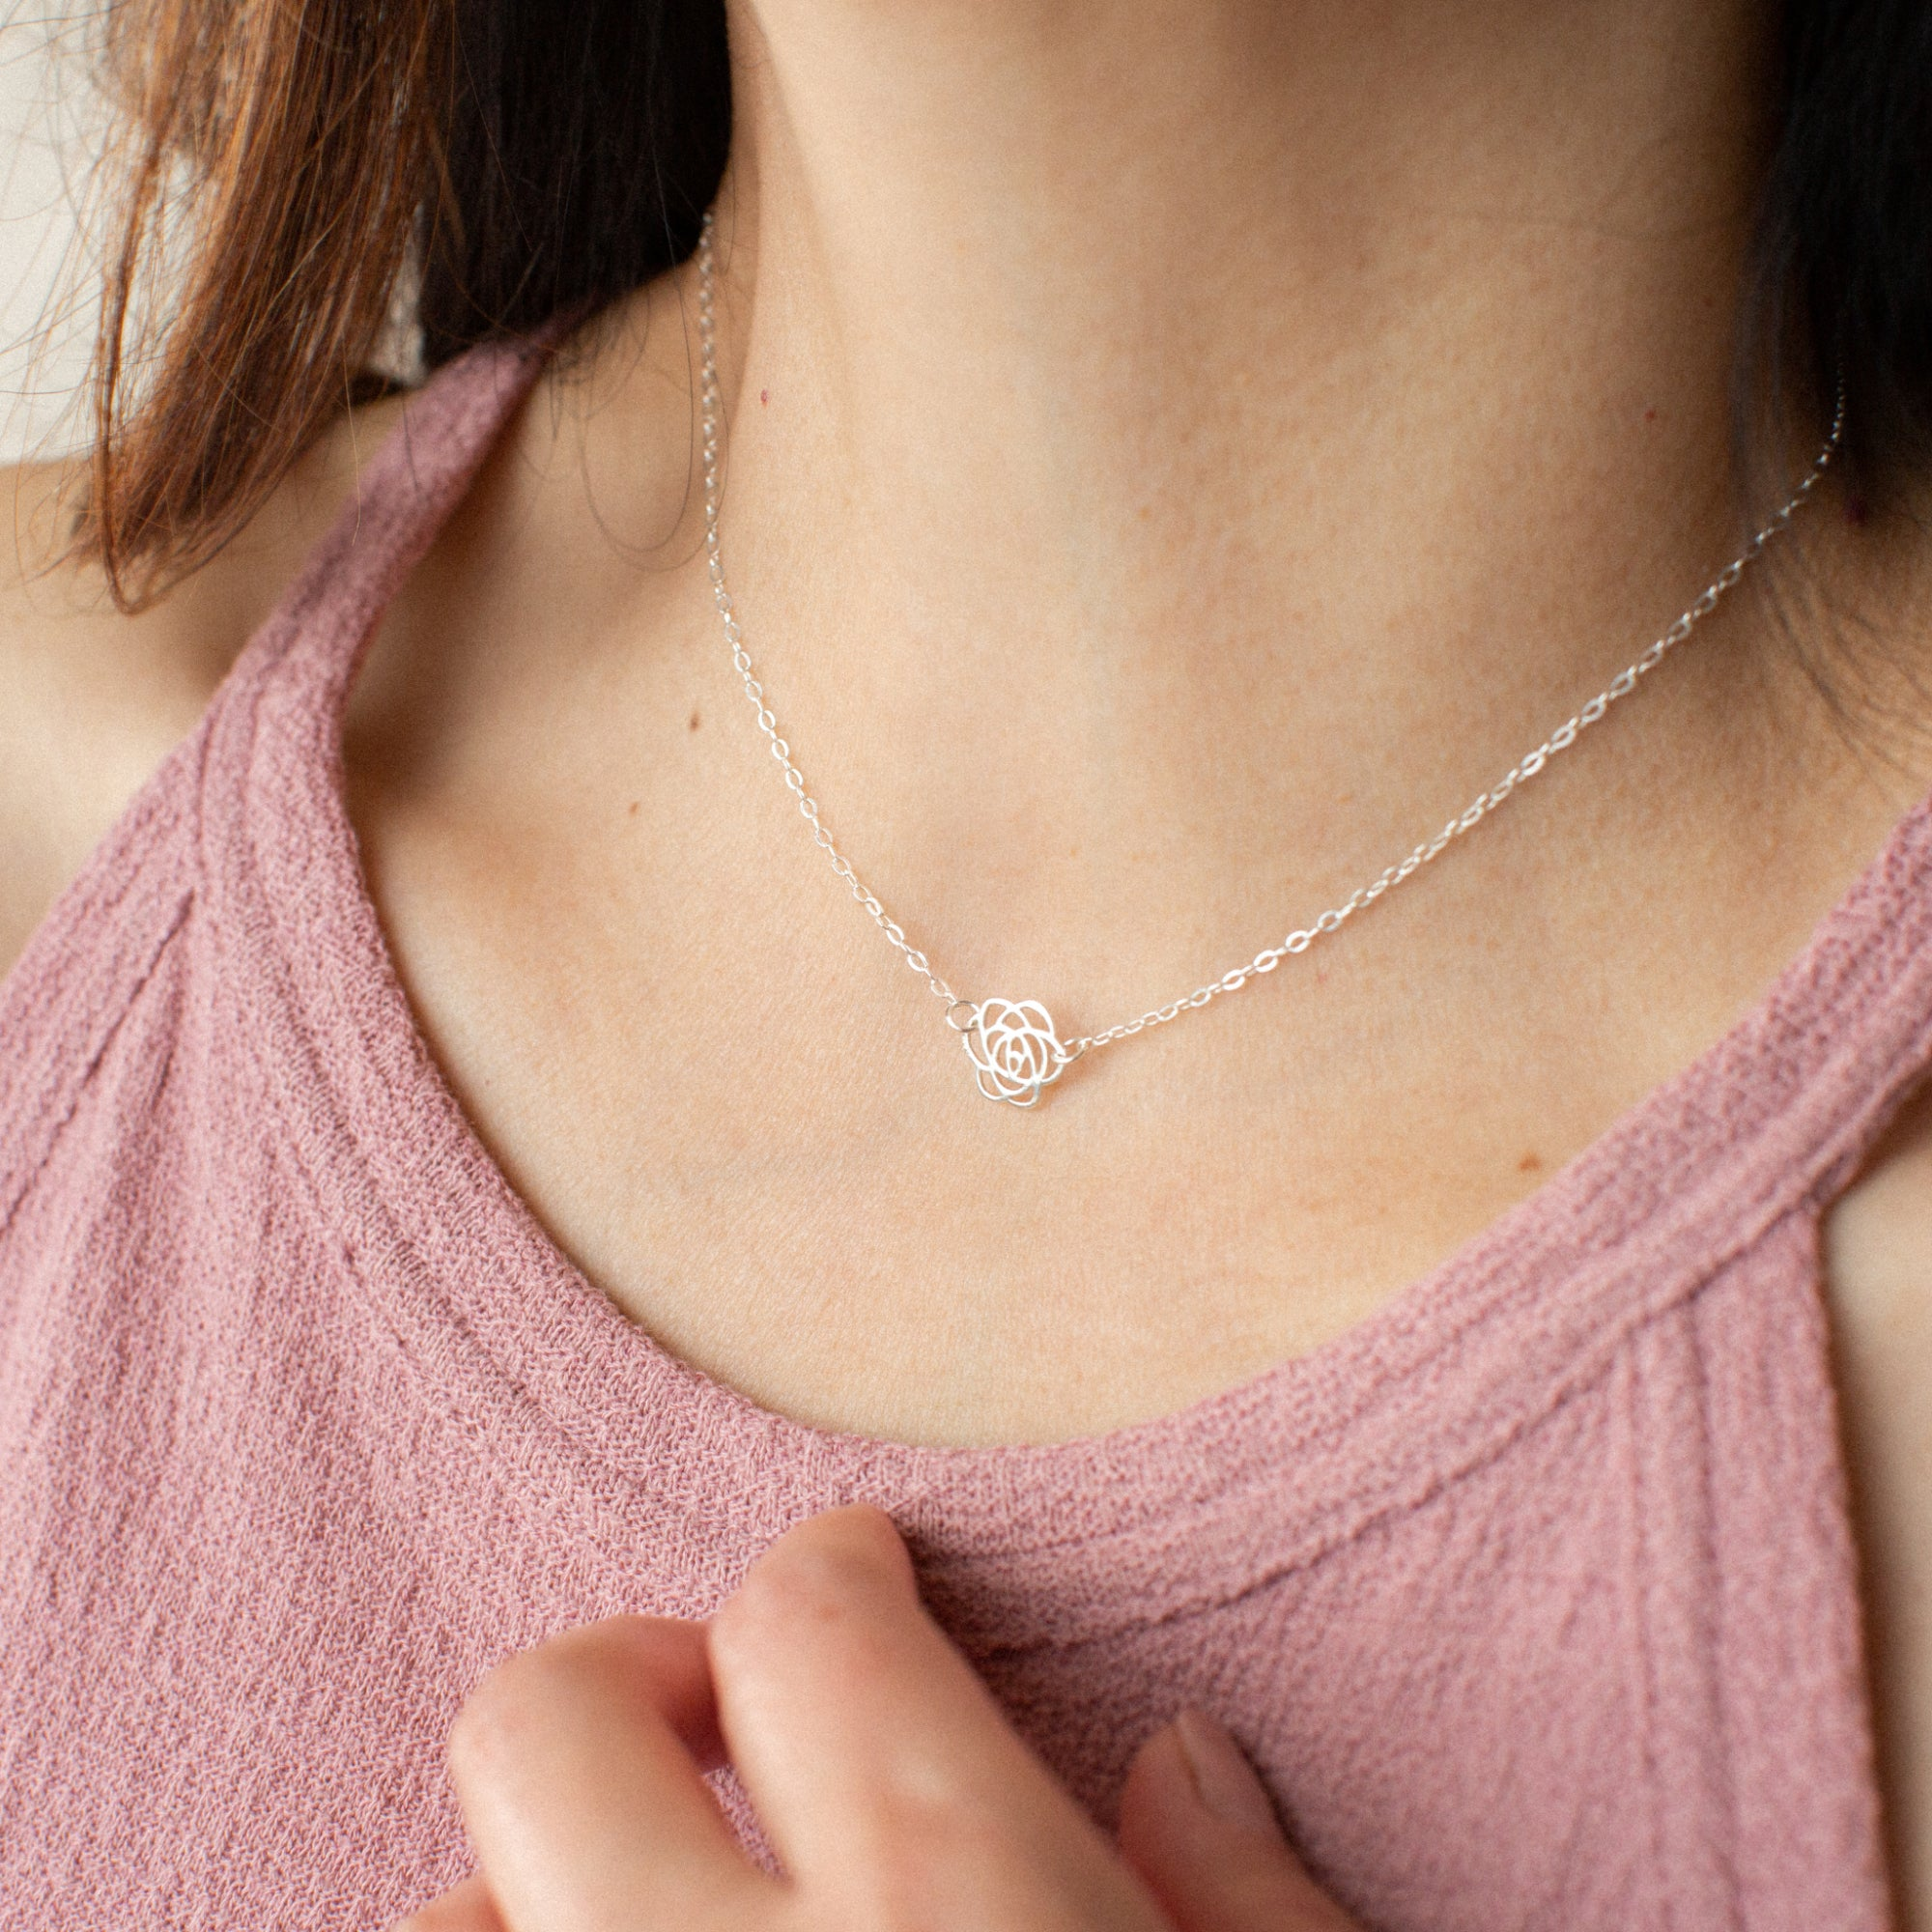 Close-up of Woman in Pink Shirt Wearing Silver Rose Pendant Necklace 'Thank You' Model Photo by Asha Blooms